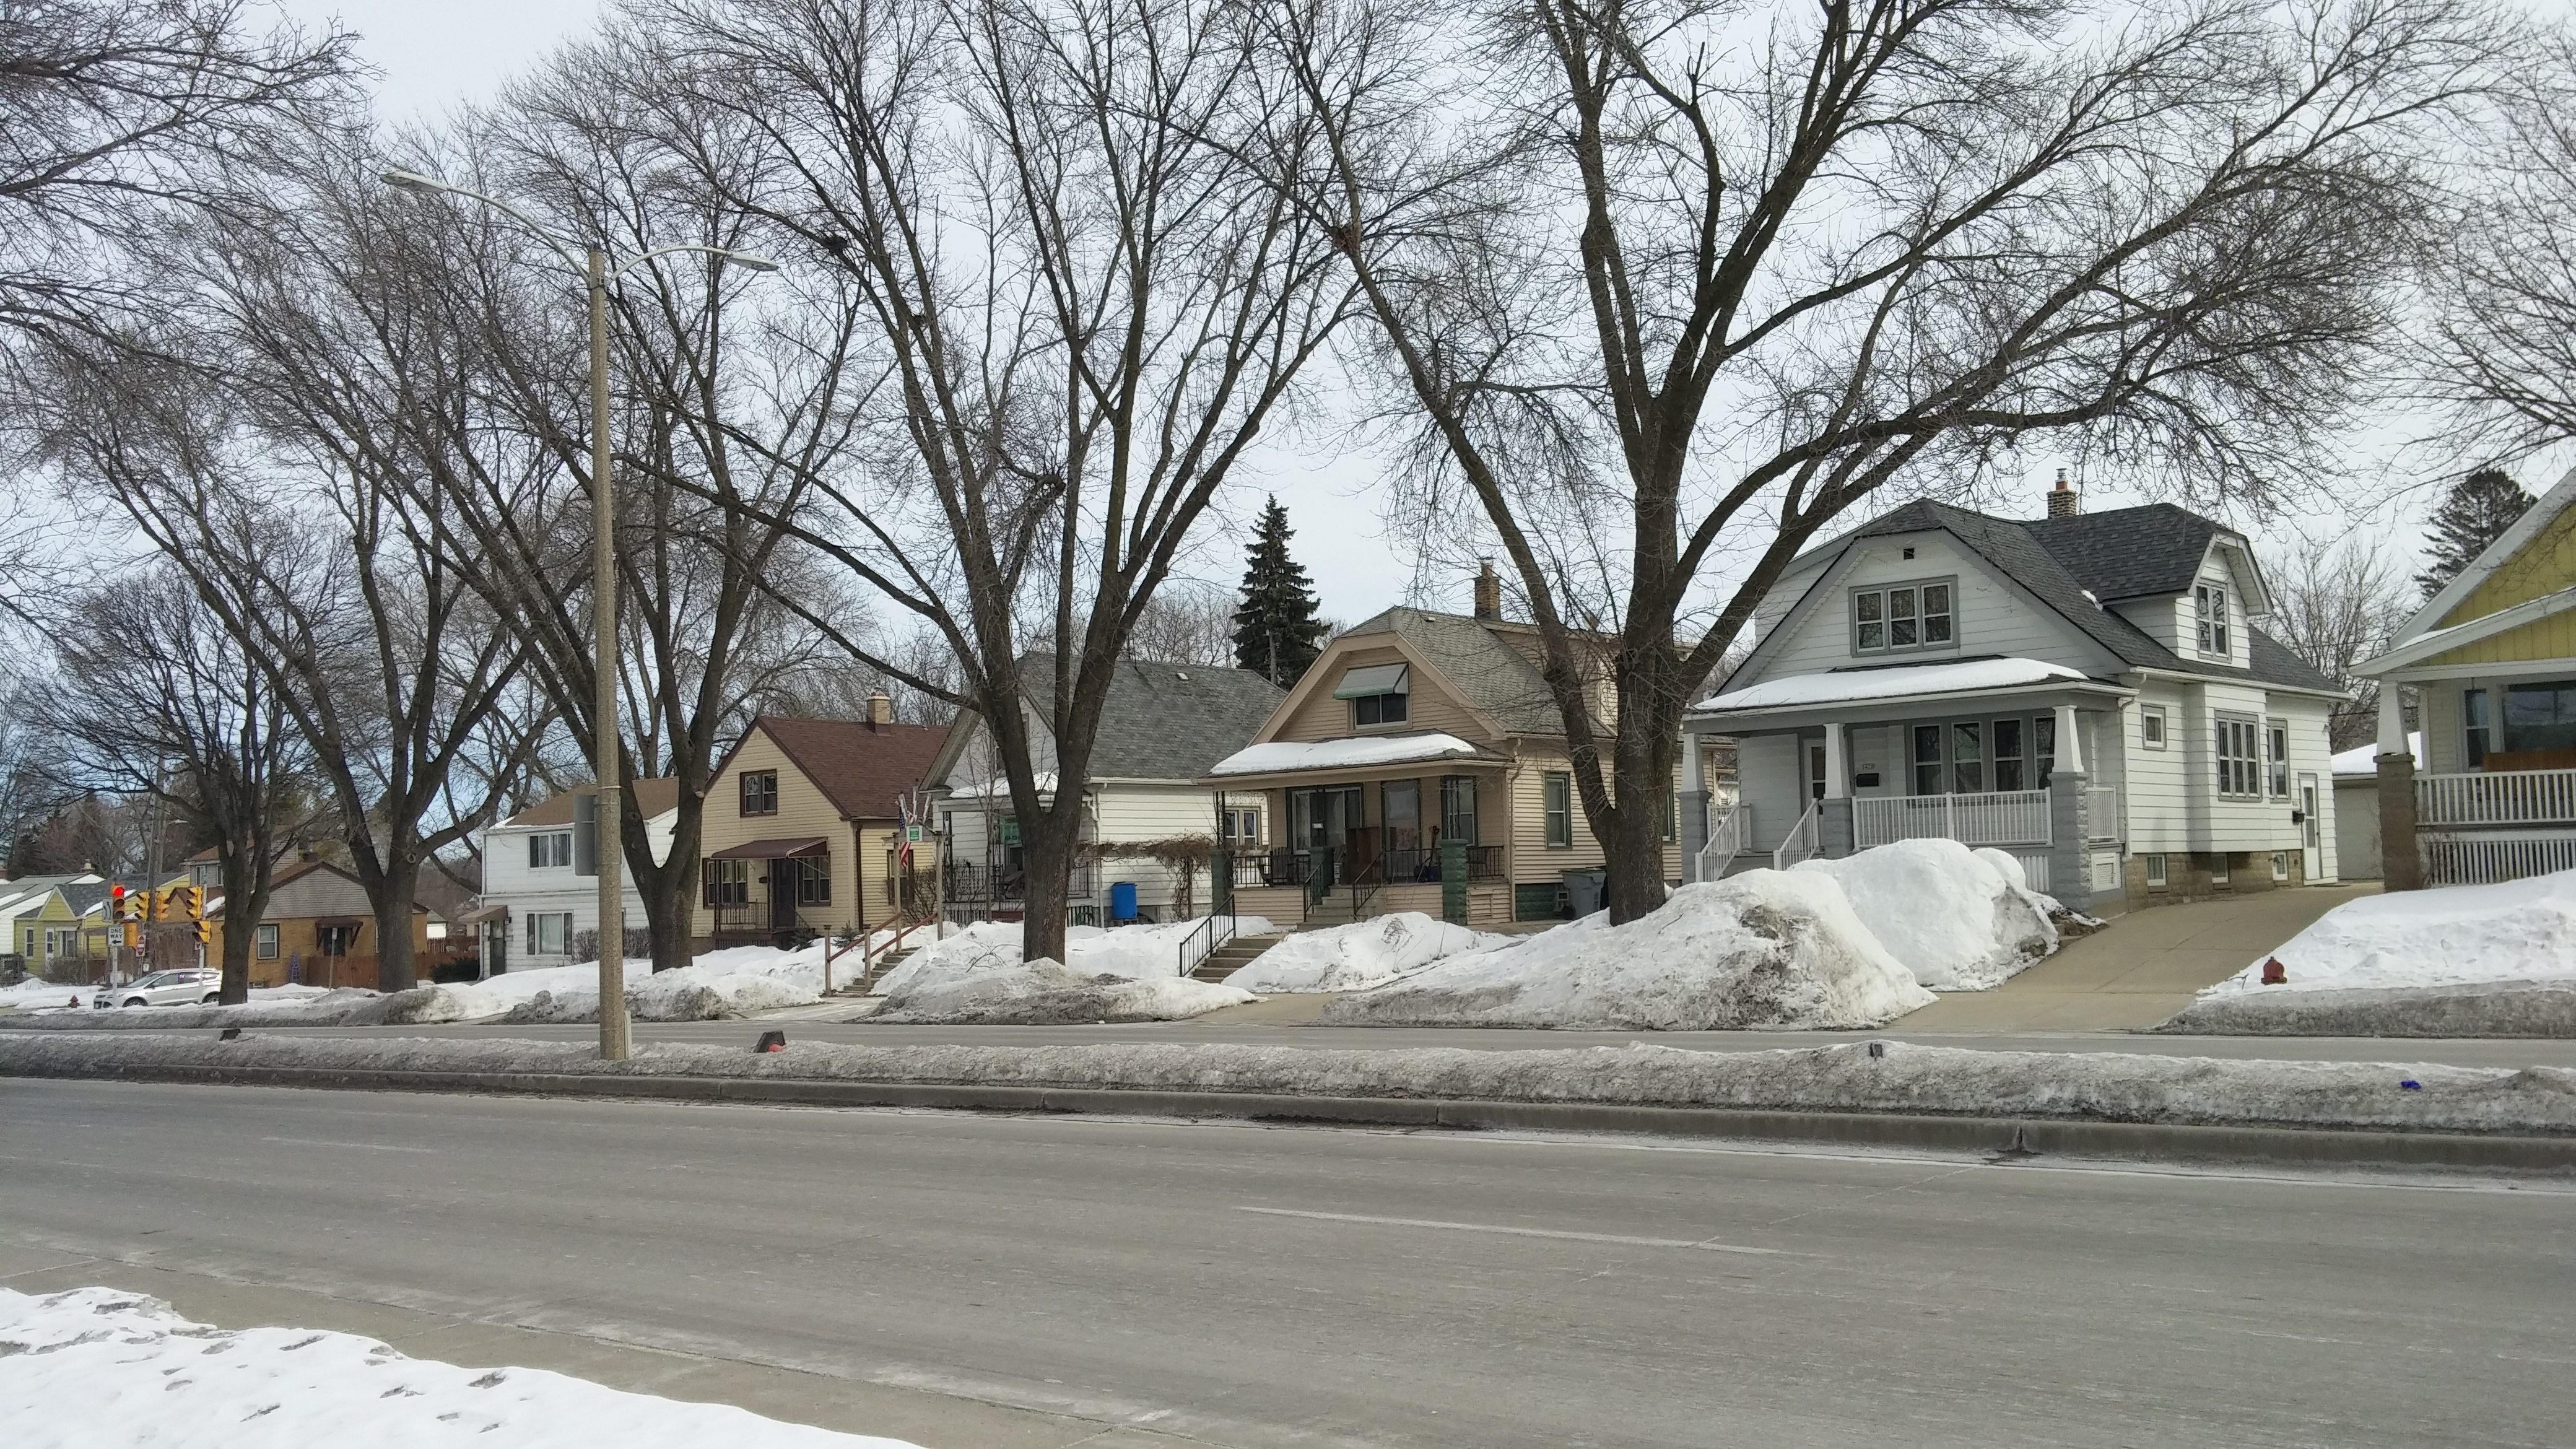 Homes on S. Chase Avenue. Photo by Carl Baehr.